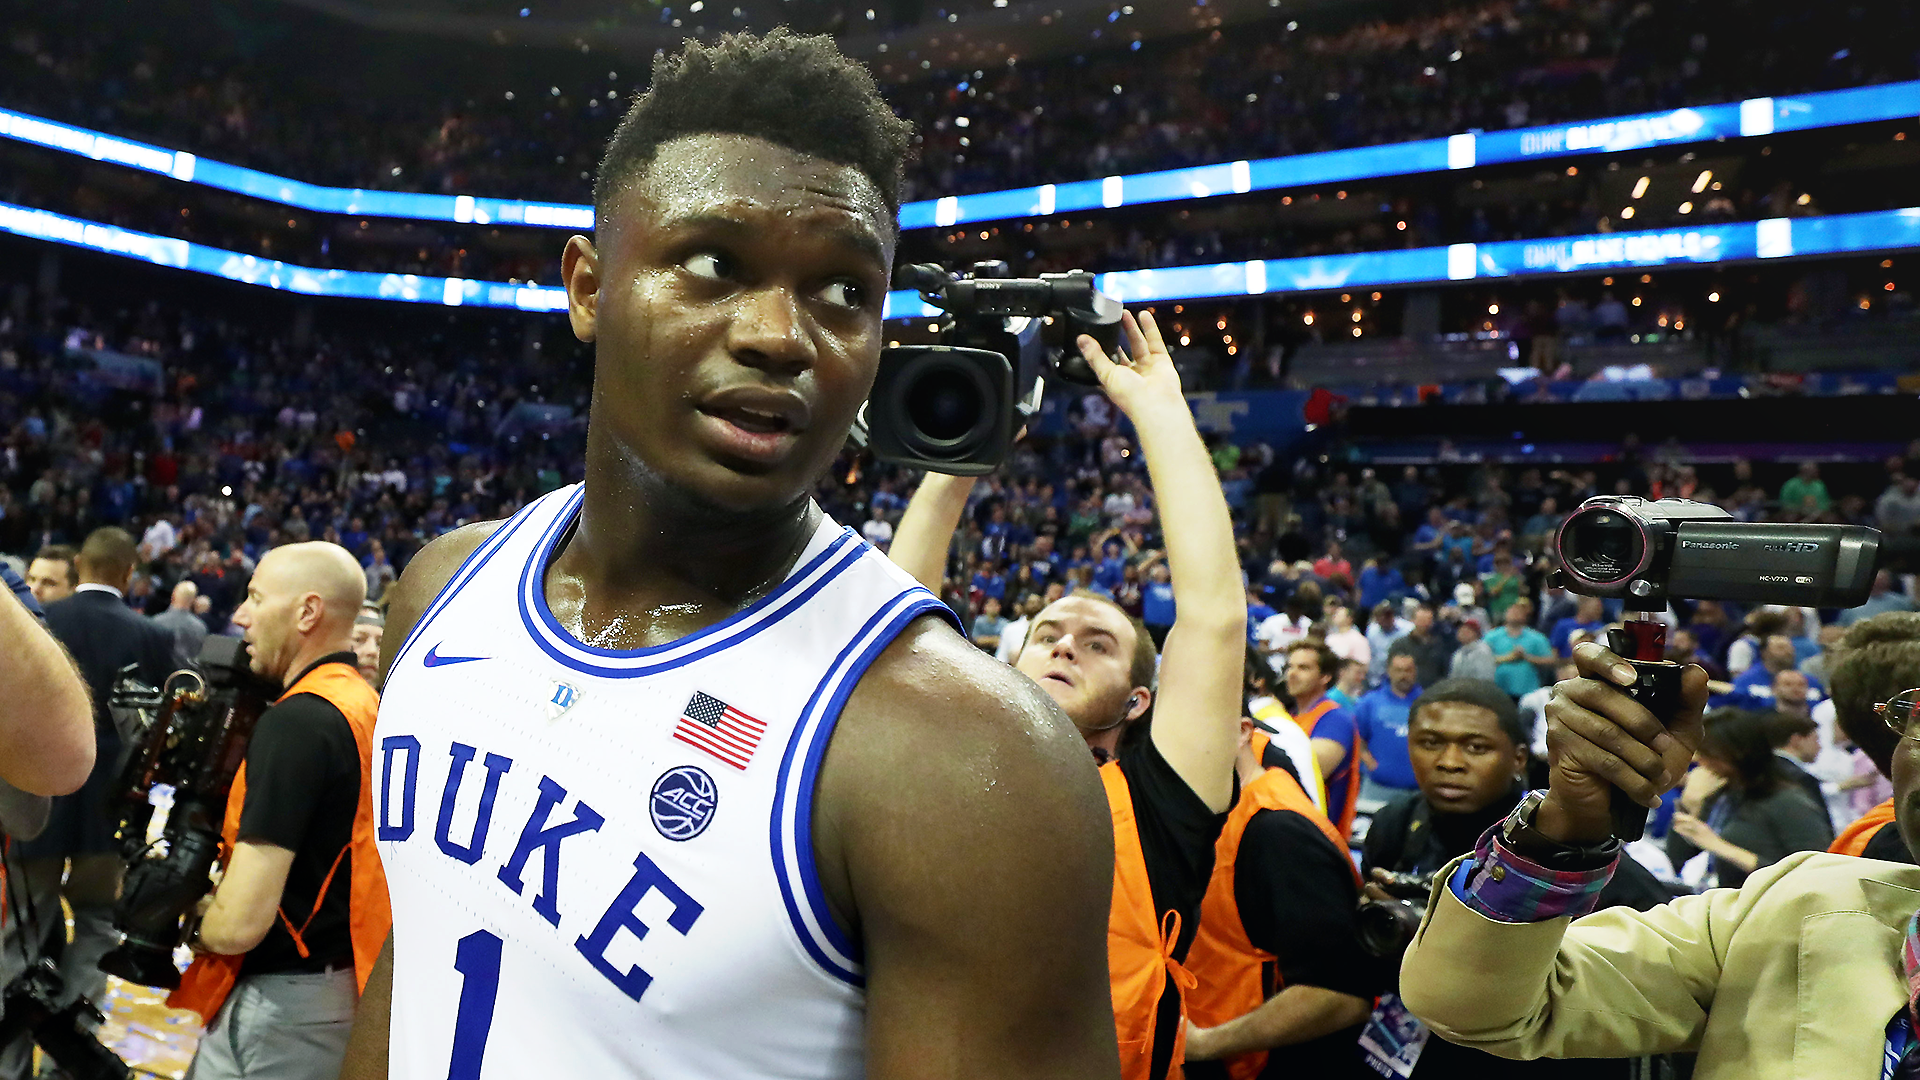 Zion Williamson can end Knicks' spell of NBA Draft lottery disasters